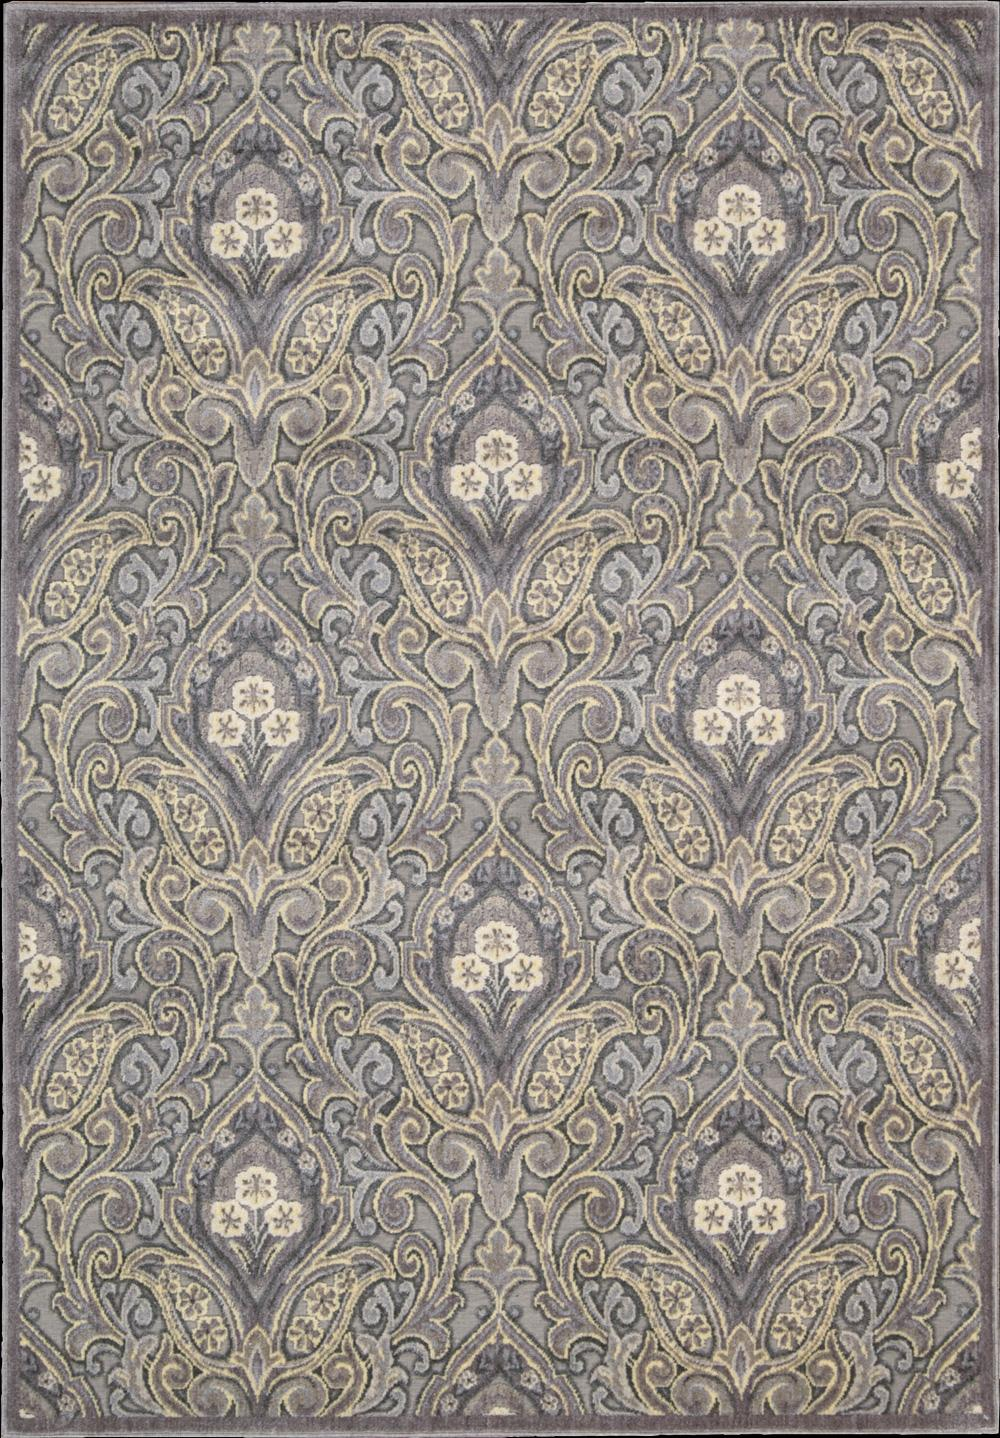 "Nourison Graphic Illusions Area Rug 7'9"" x 10'10"" - Item Number: 13169"